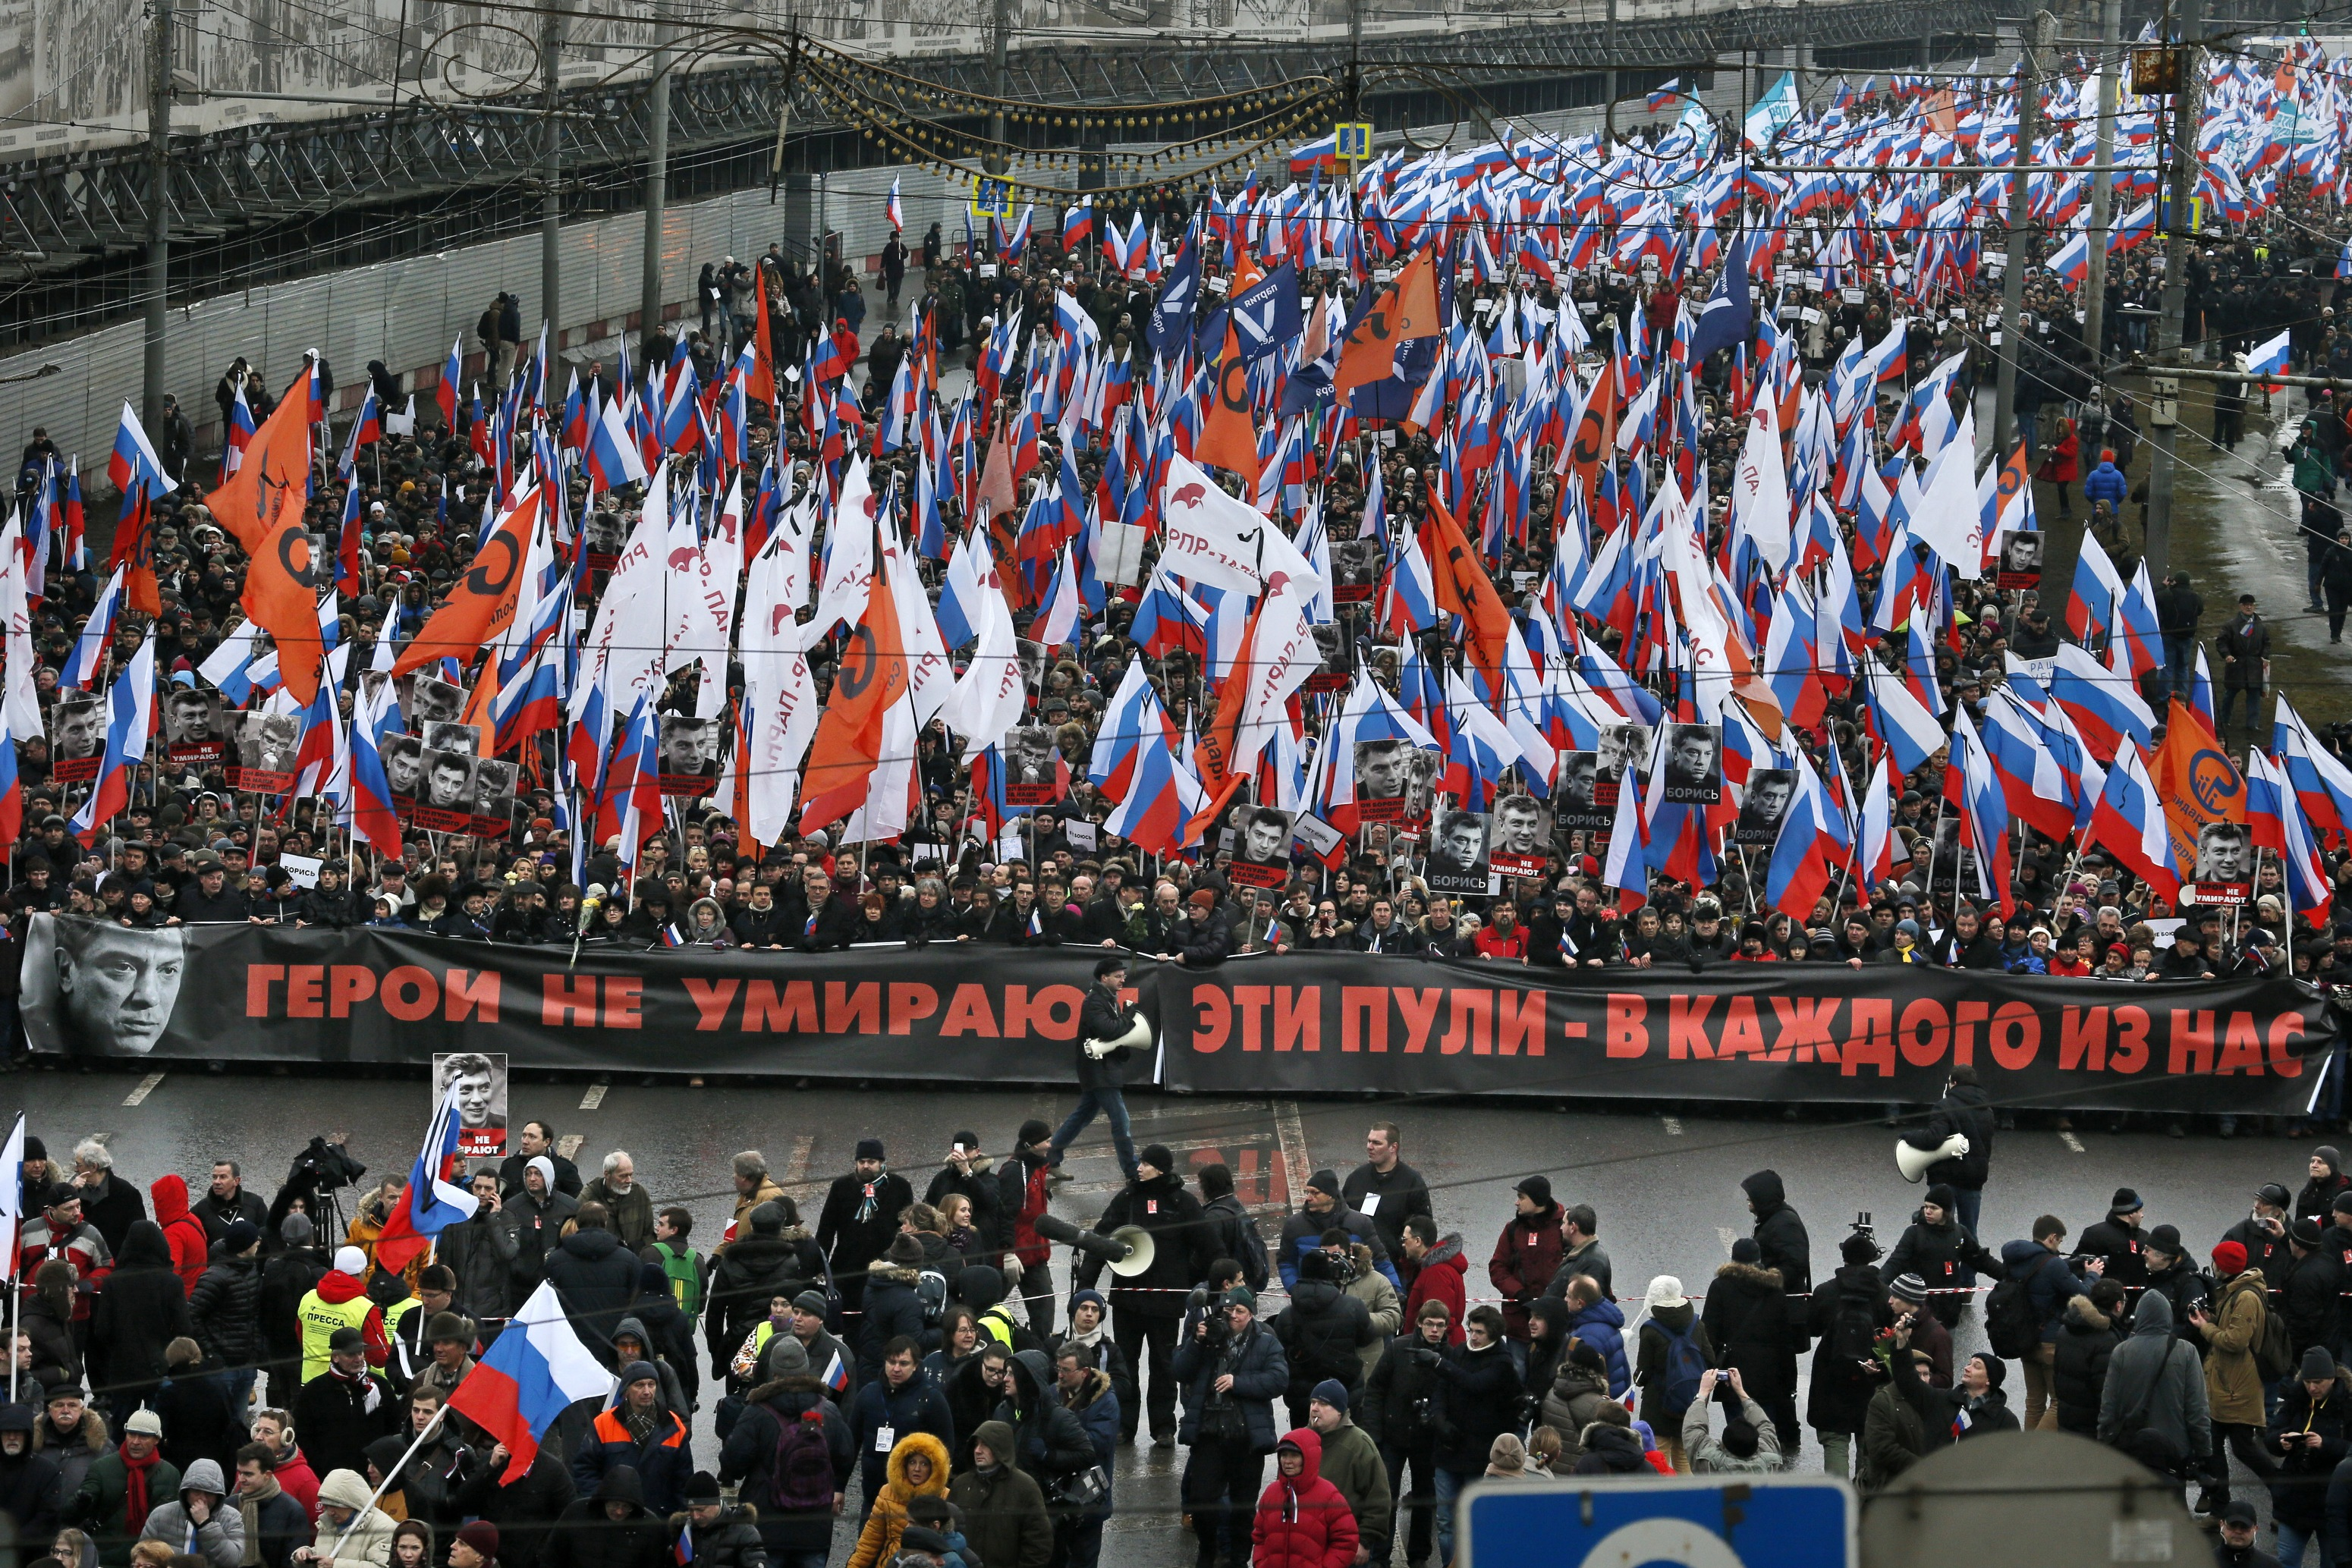 """People carry a huge banner reading """"Those bullets for everyone of us, heroes never die!"""" as they march in memory of opposition leader Boris Nemtsov who was gunned down on Friday near the Kremlin, in Moscow, Russia, March 1, 2015."""